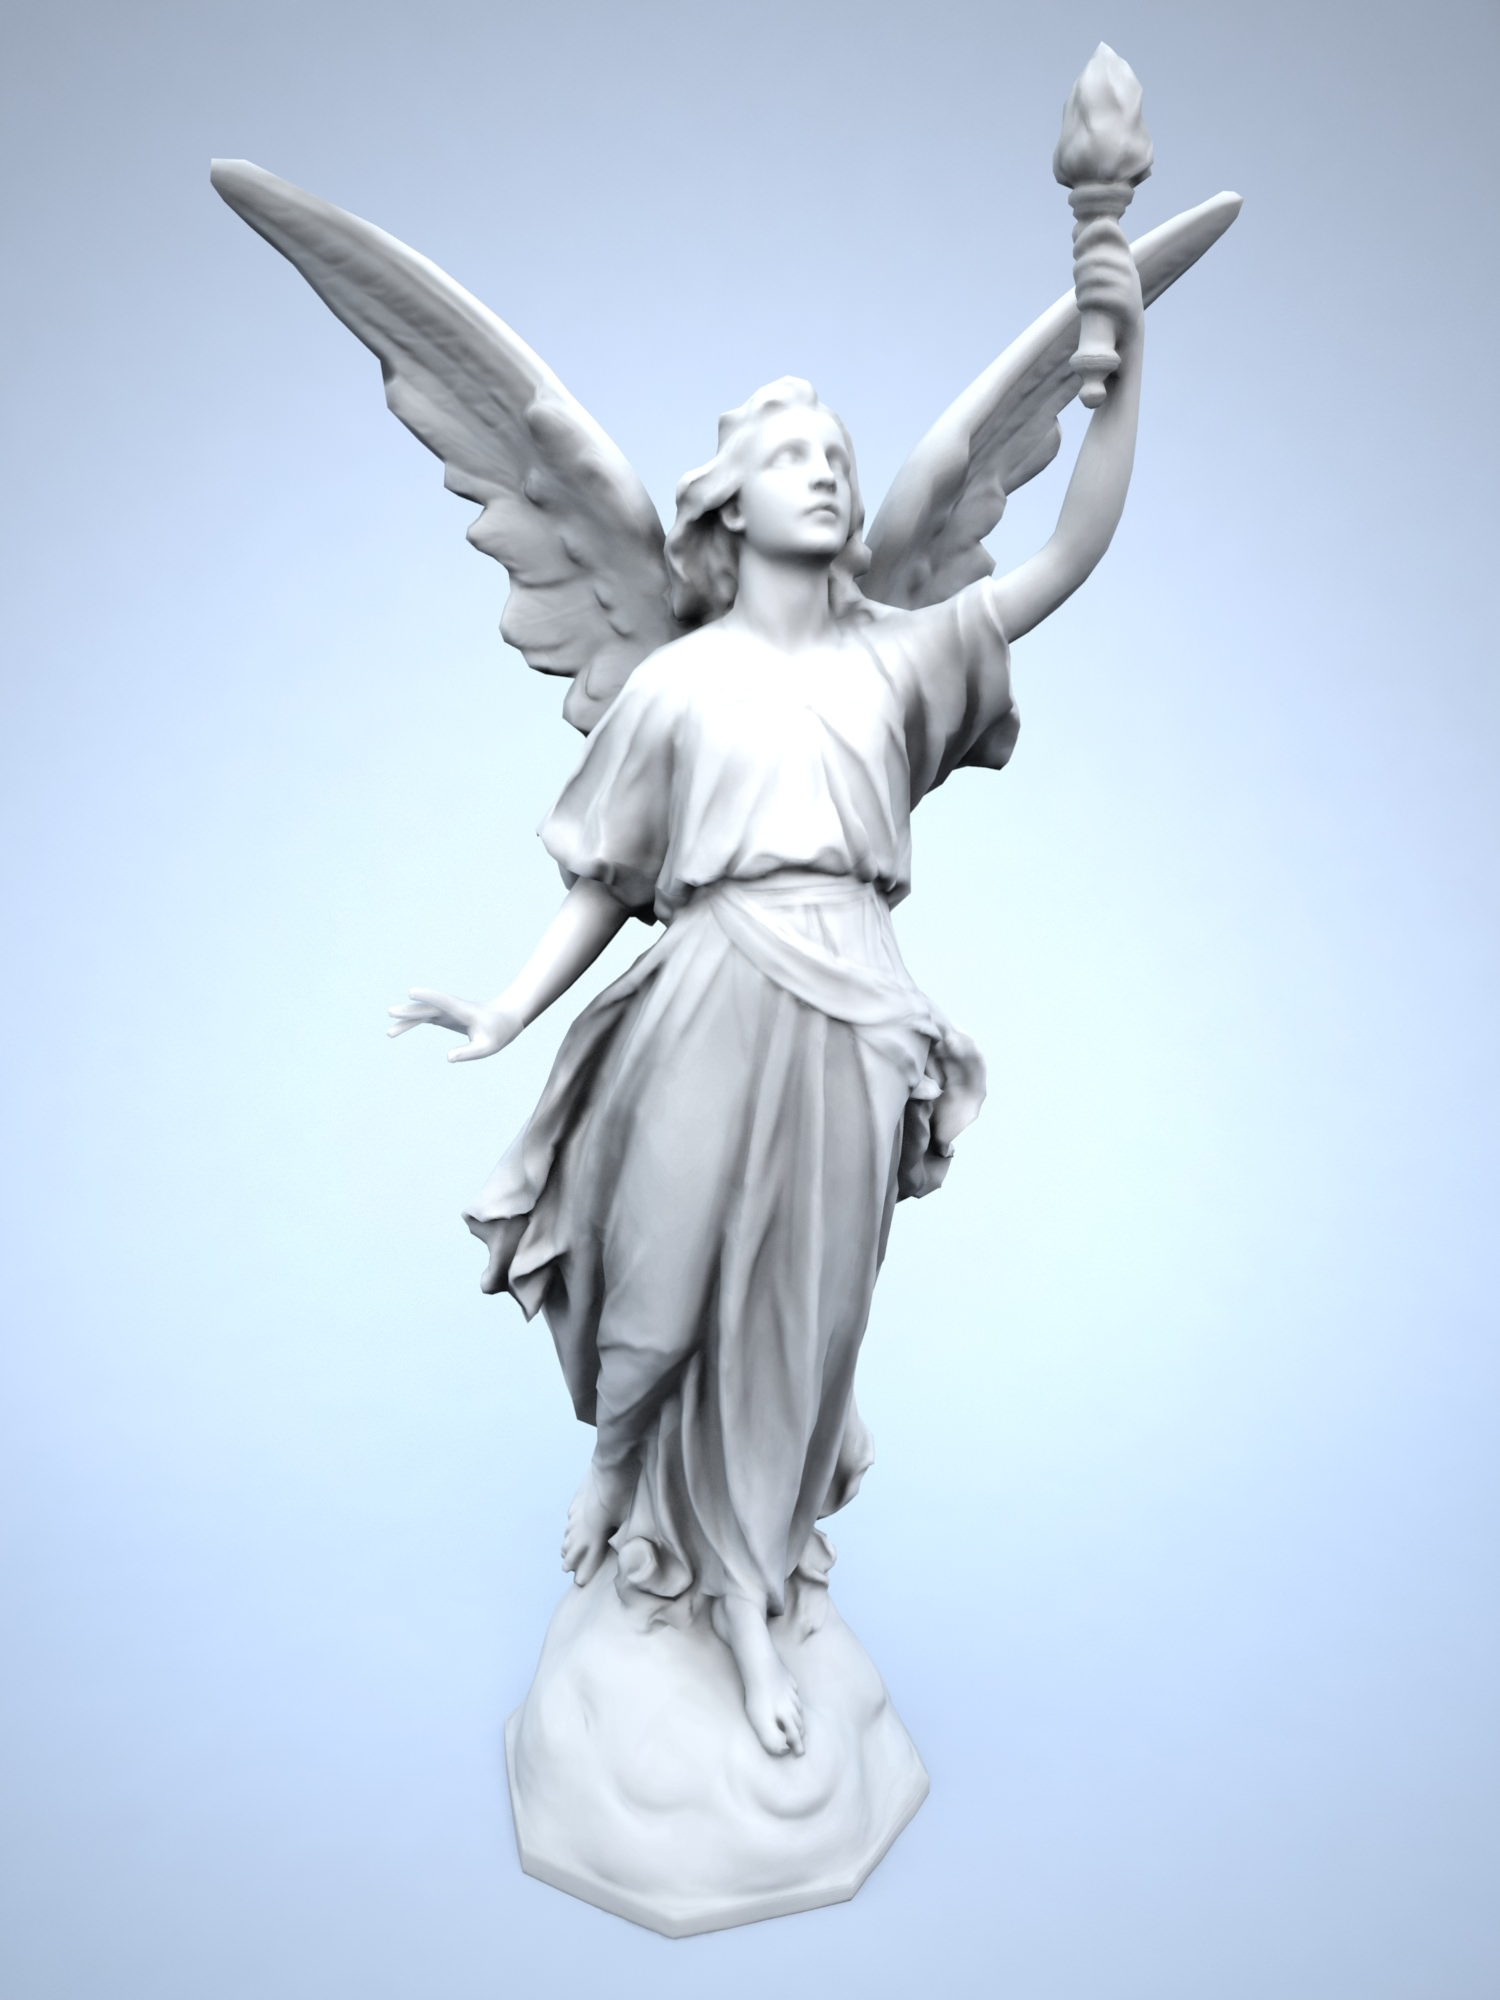 Lucy angel free vr ar low poly 3d model 3ds Free 3d